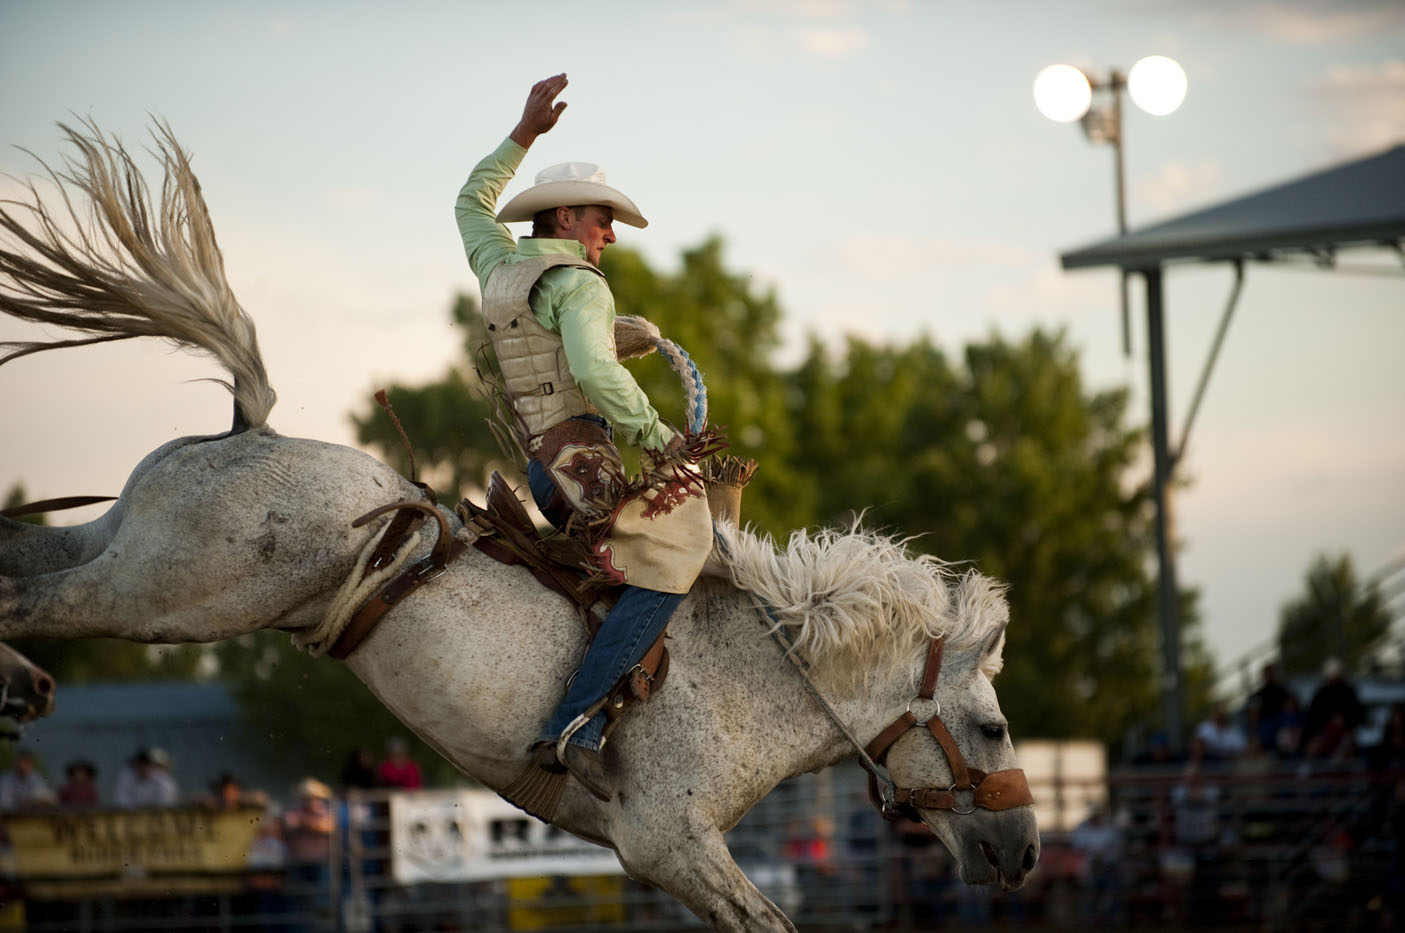 City Of Kalispell >> Granddaddy of Montana Rodeos! - The Last Best Plates